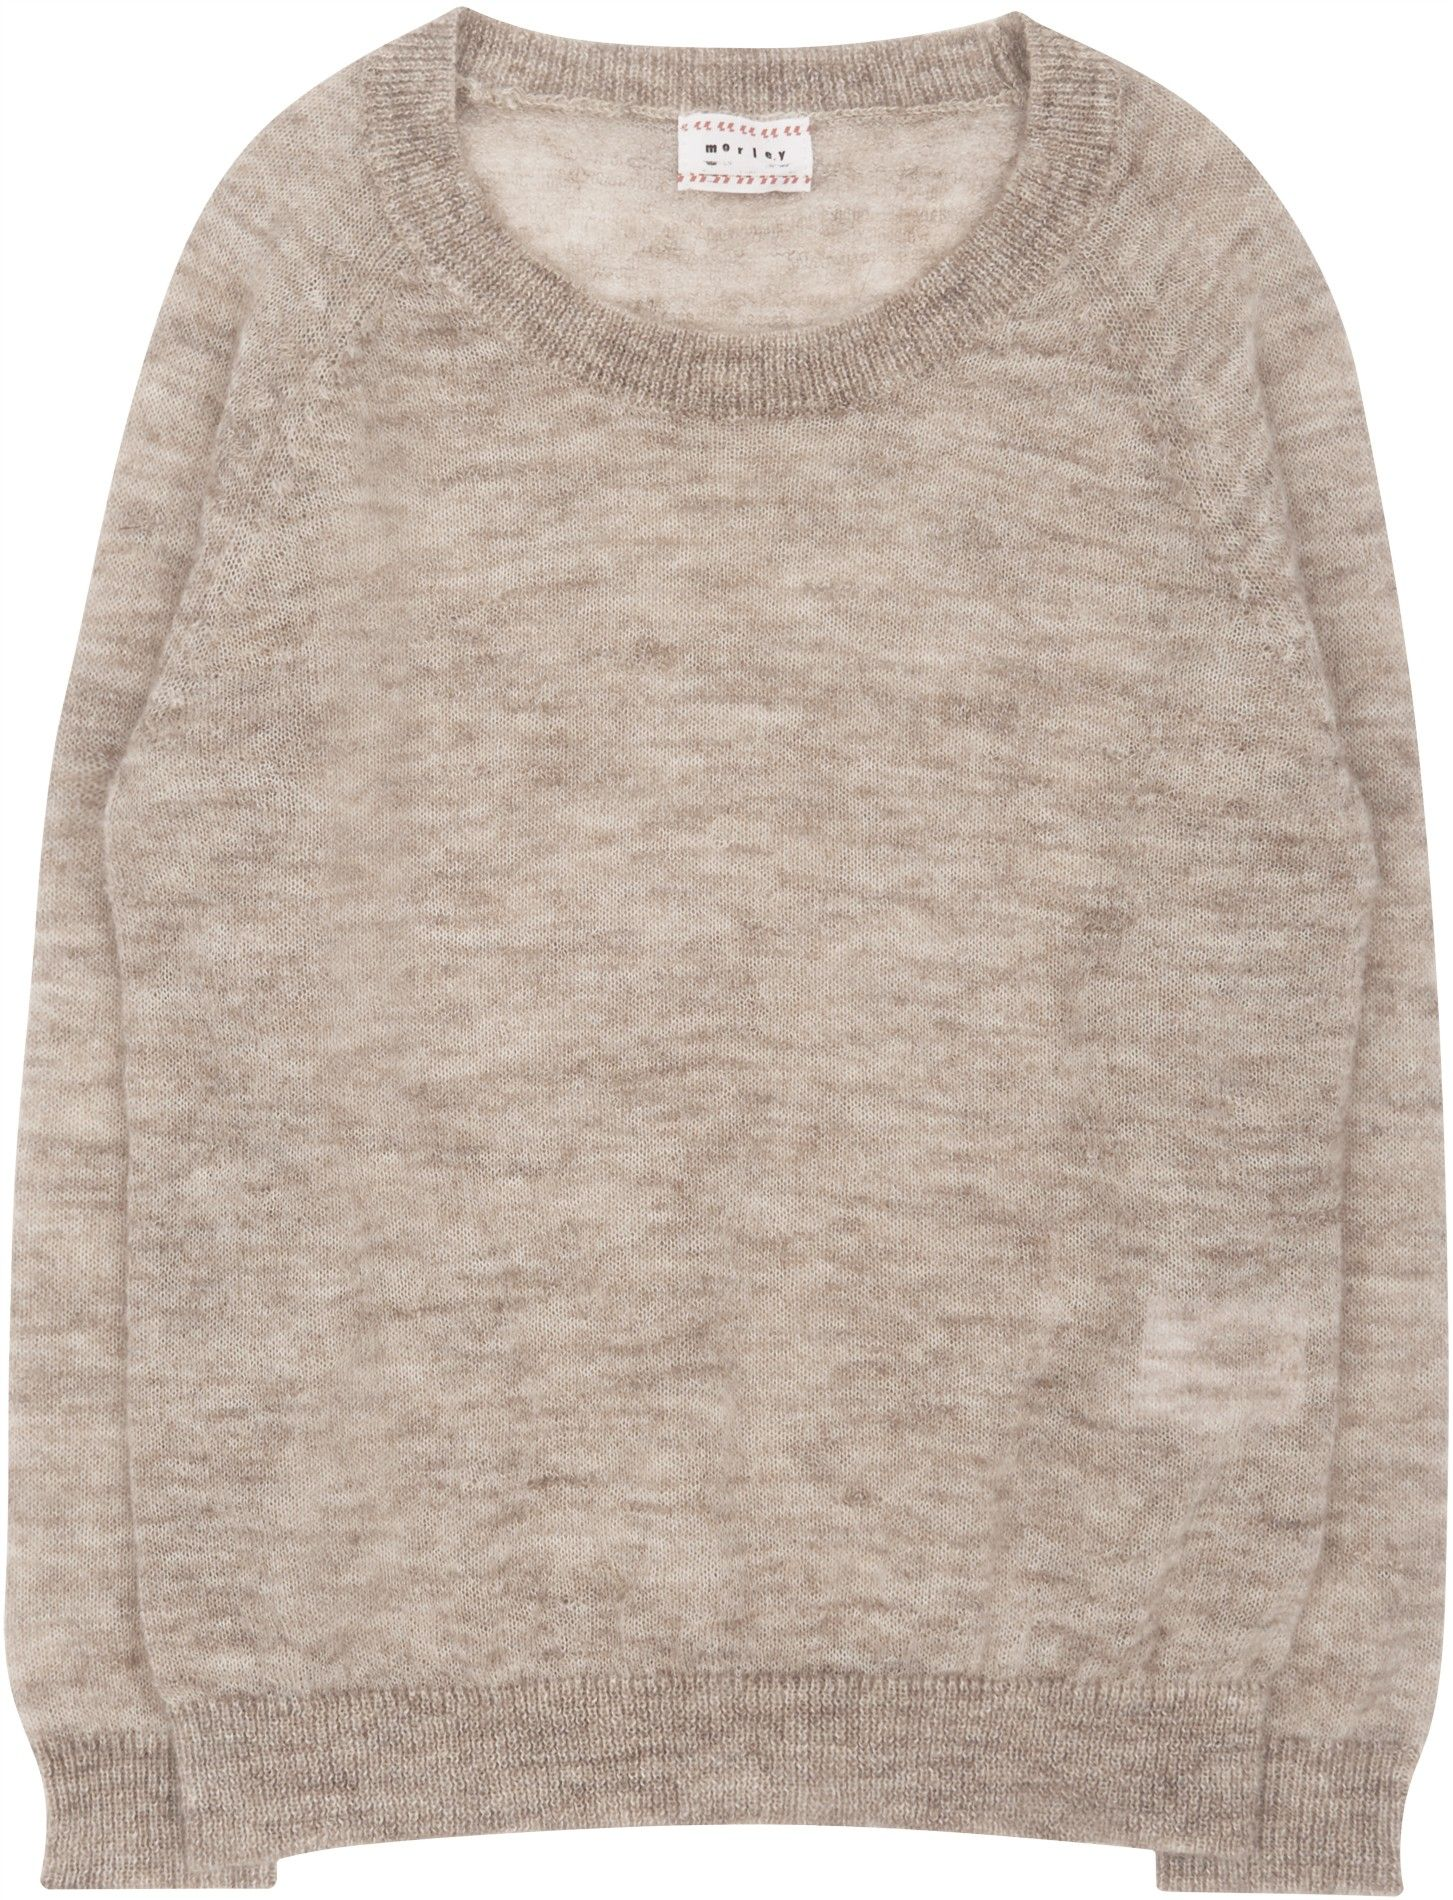 Shop The Morley Girls , Boys Chilli Jumper In Neutrals At Elias & Grace. Browse The Cutest Babies Clothes From Morley, Handpicked By Elias & Grace